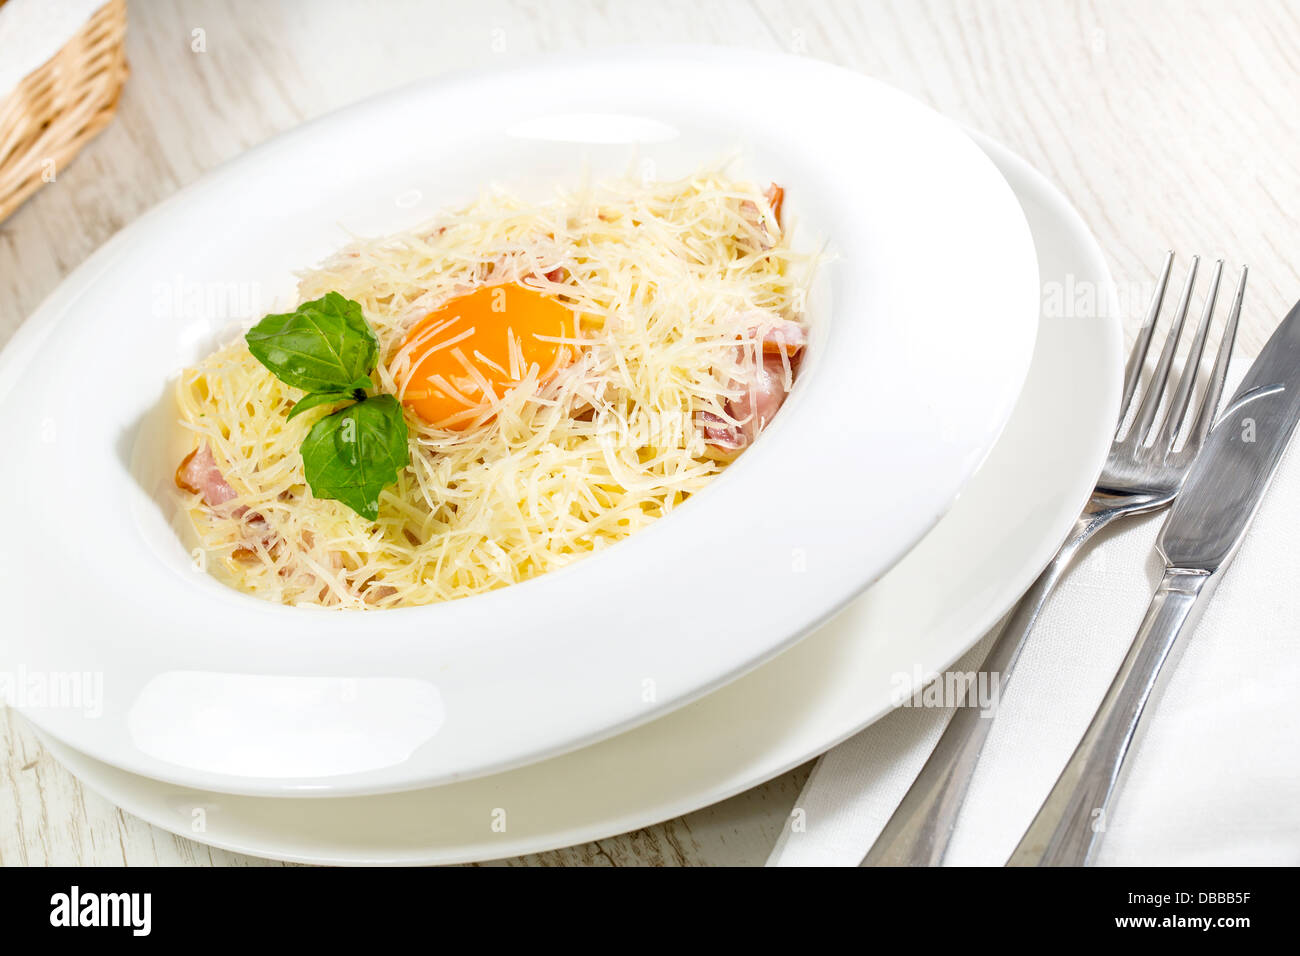 spaghetti with egg on a table in a restaurant - Stock Image